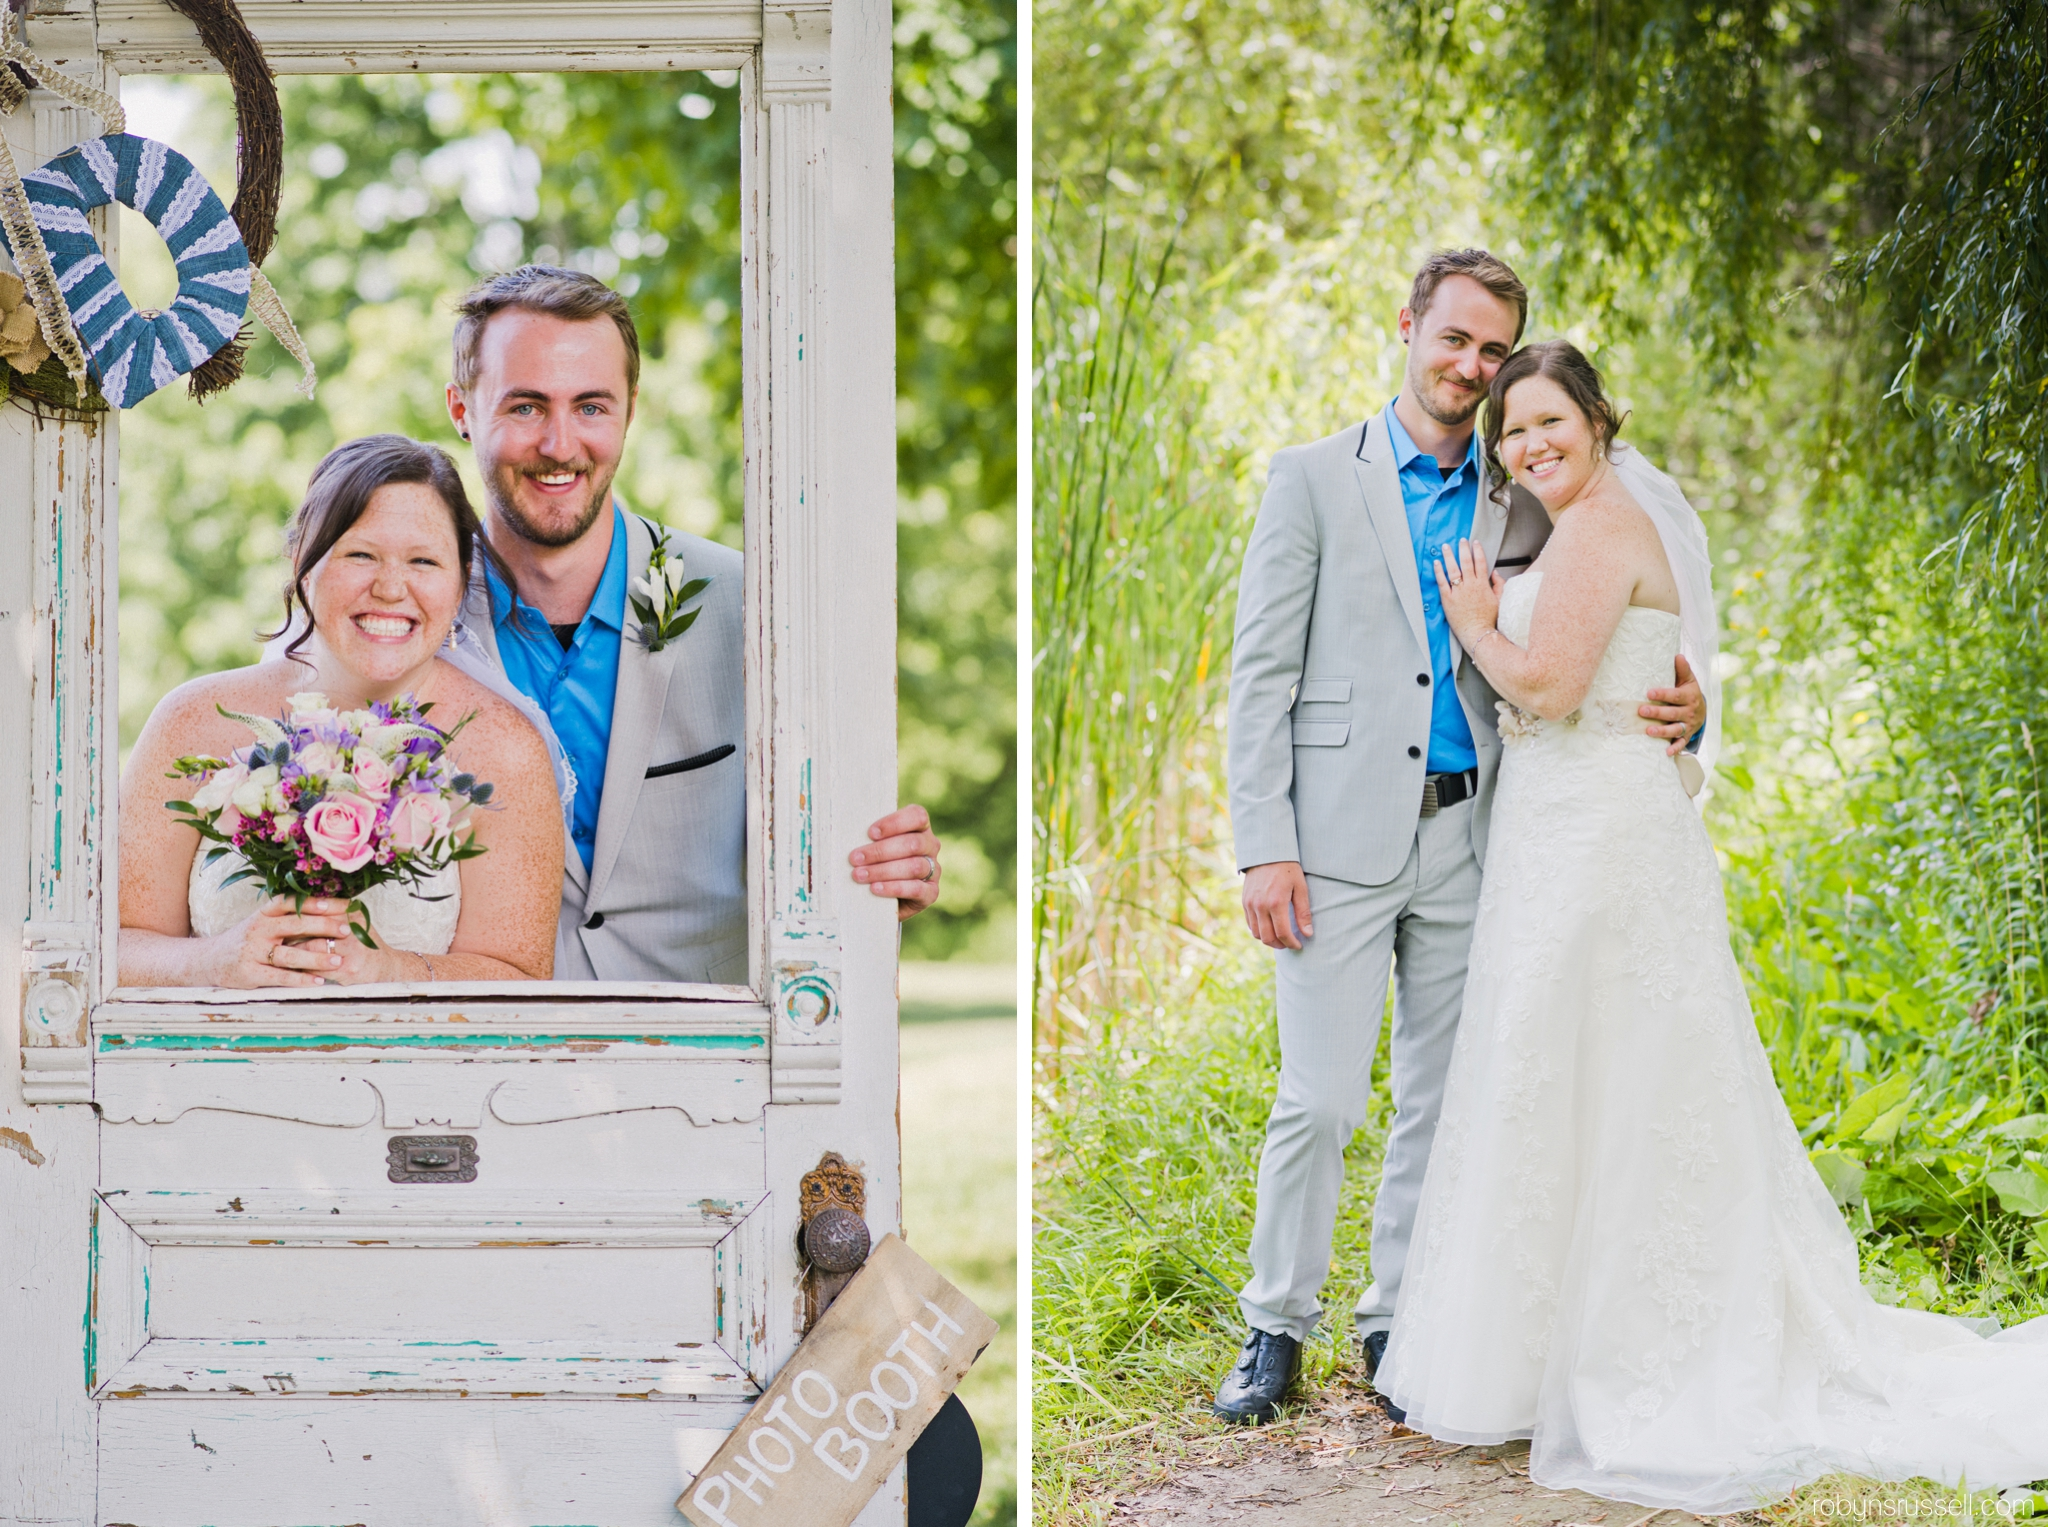 23-bride-and-groom-in-front-of-outdoor-photo-booth.jpg